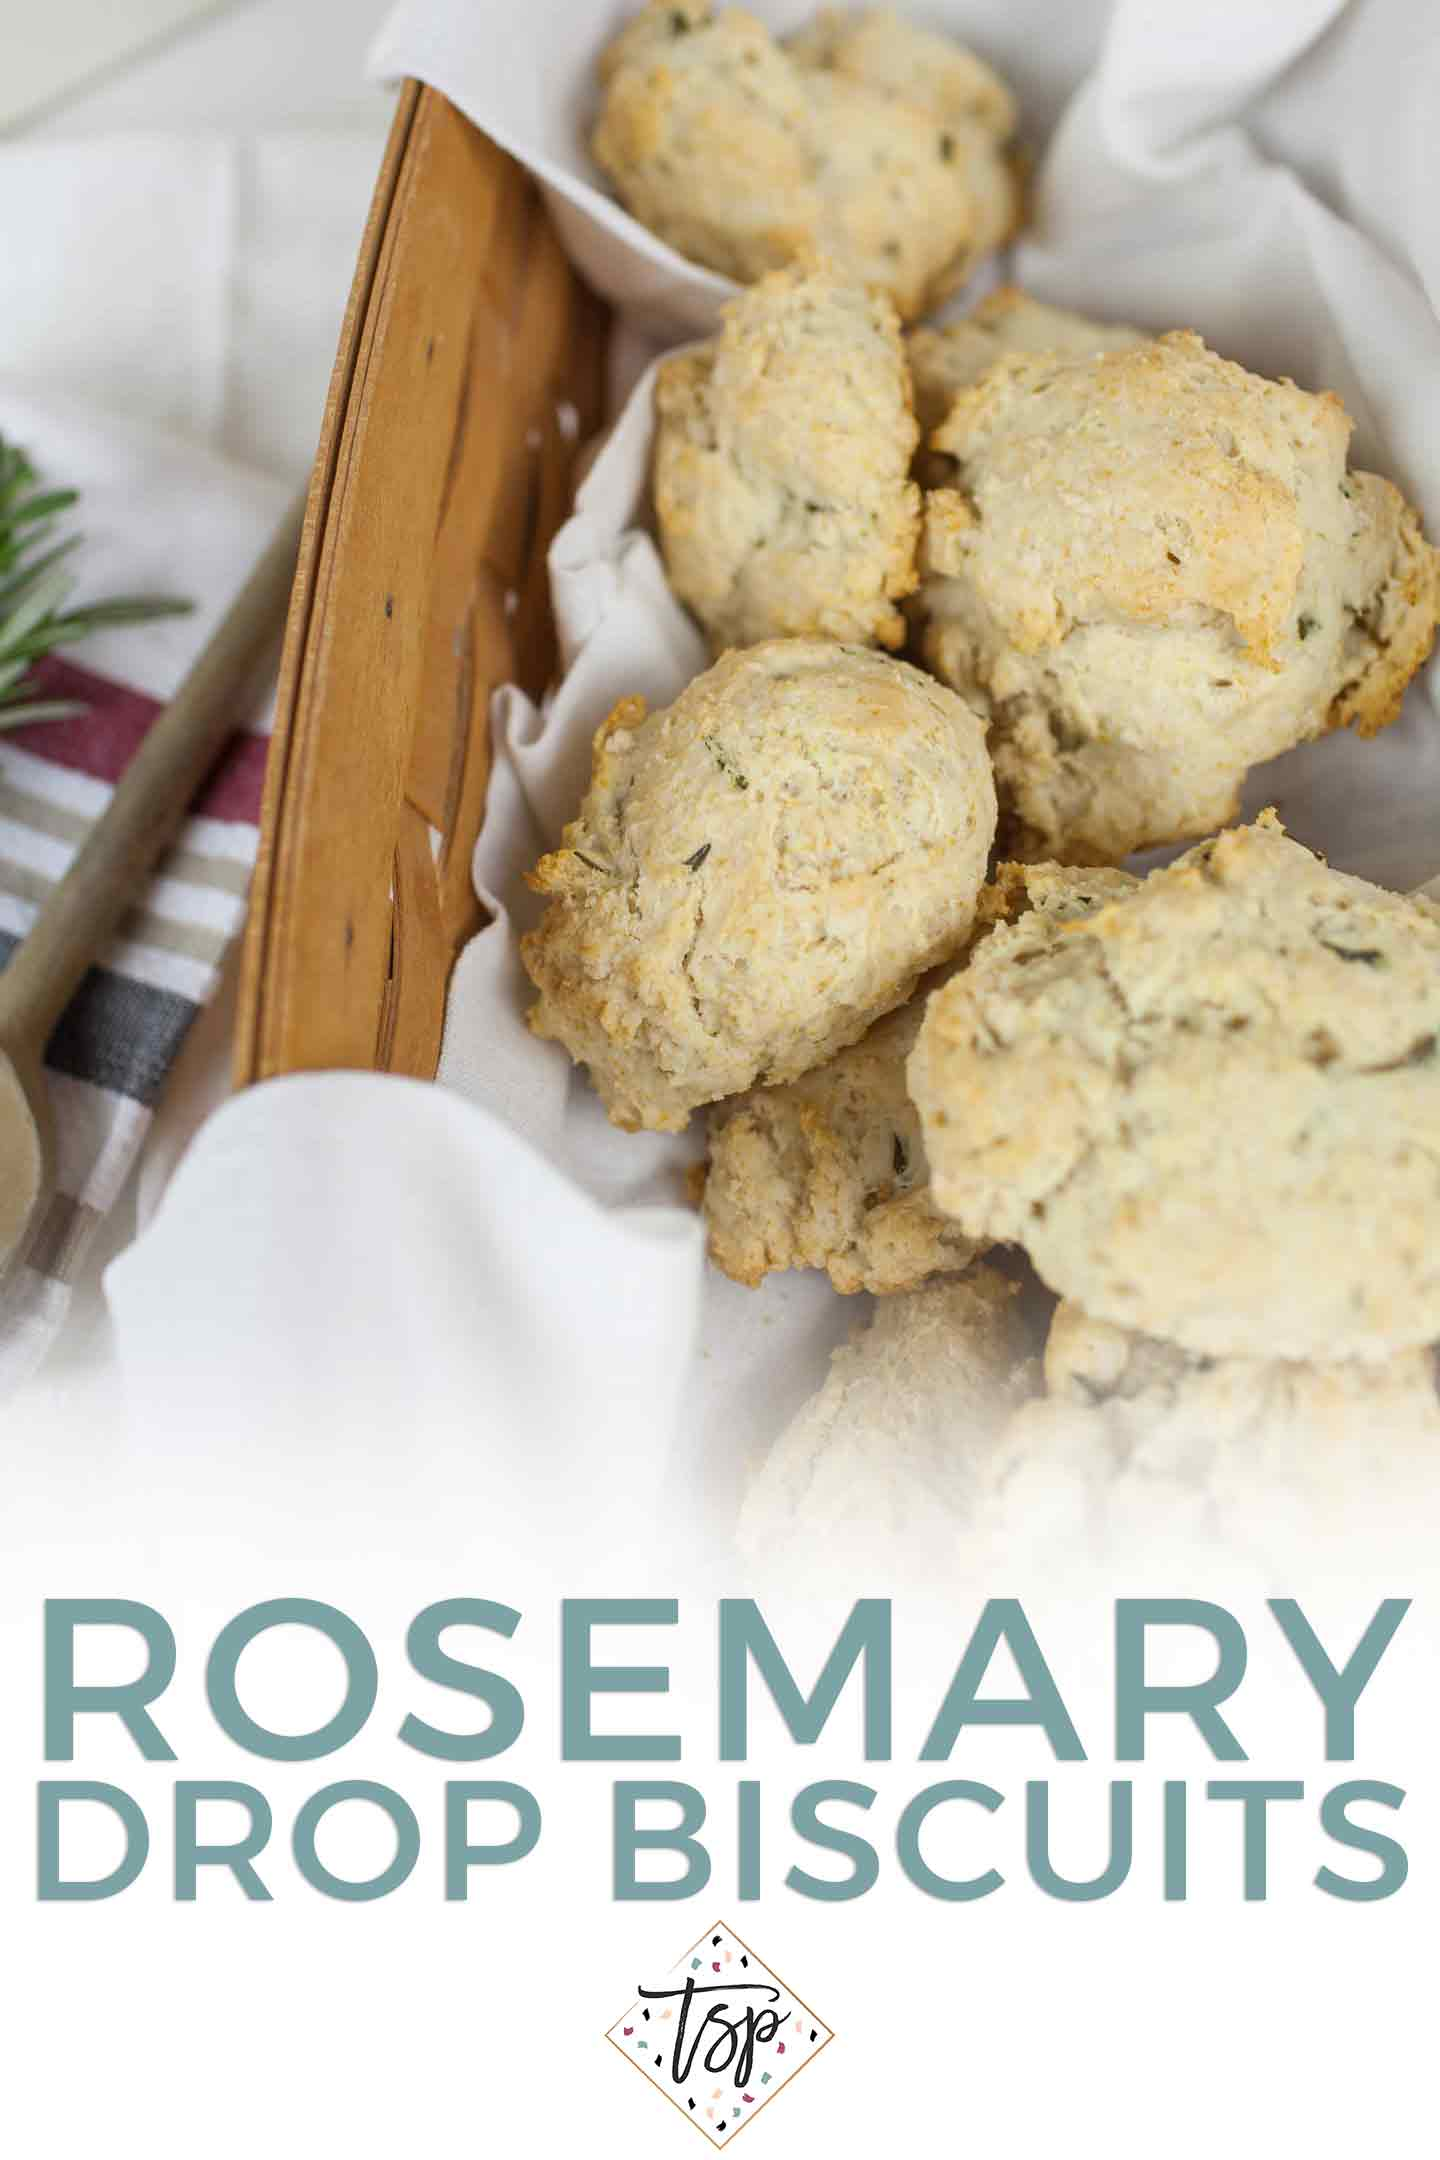 Pinterest graphic for Quick Rosemary Drop Biscuits, featuring biscuits in a basket